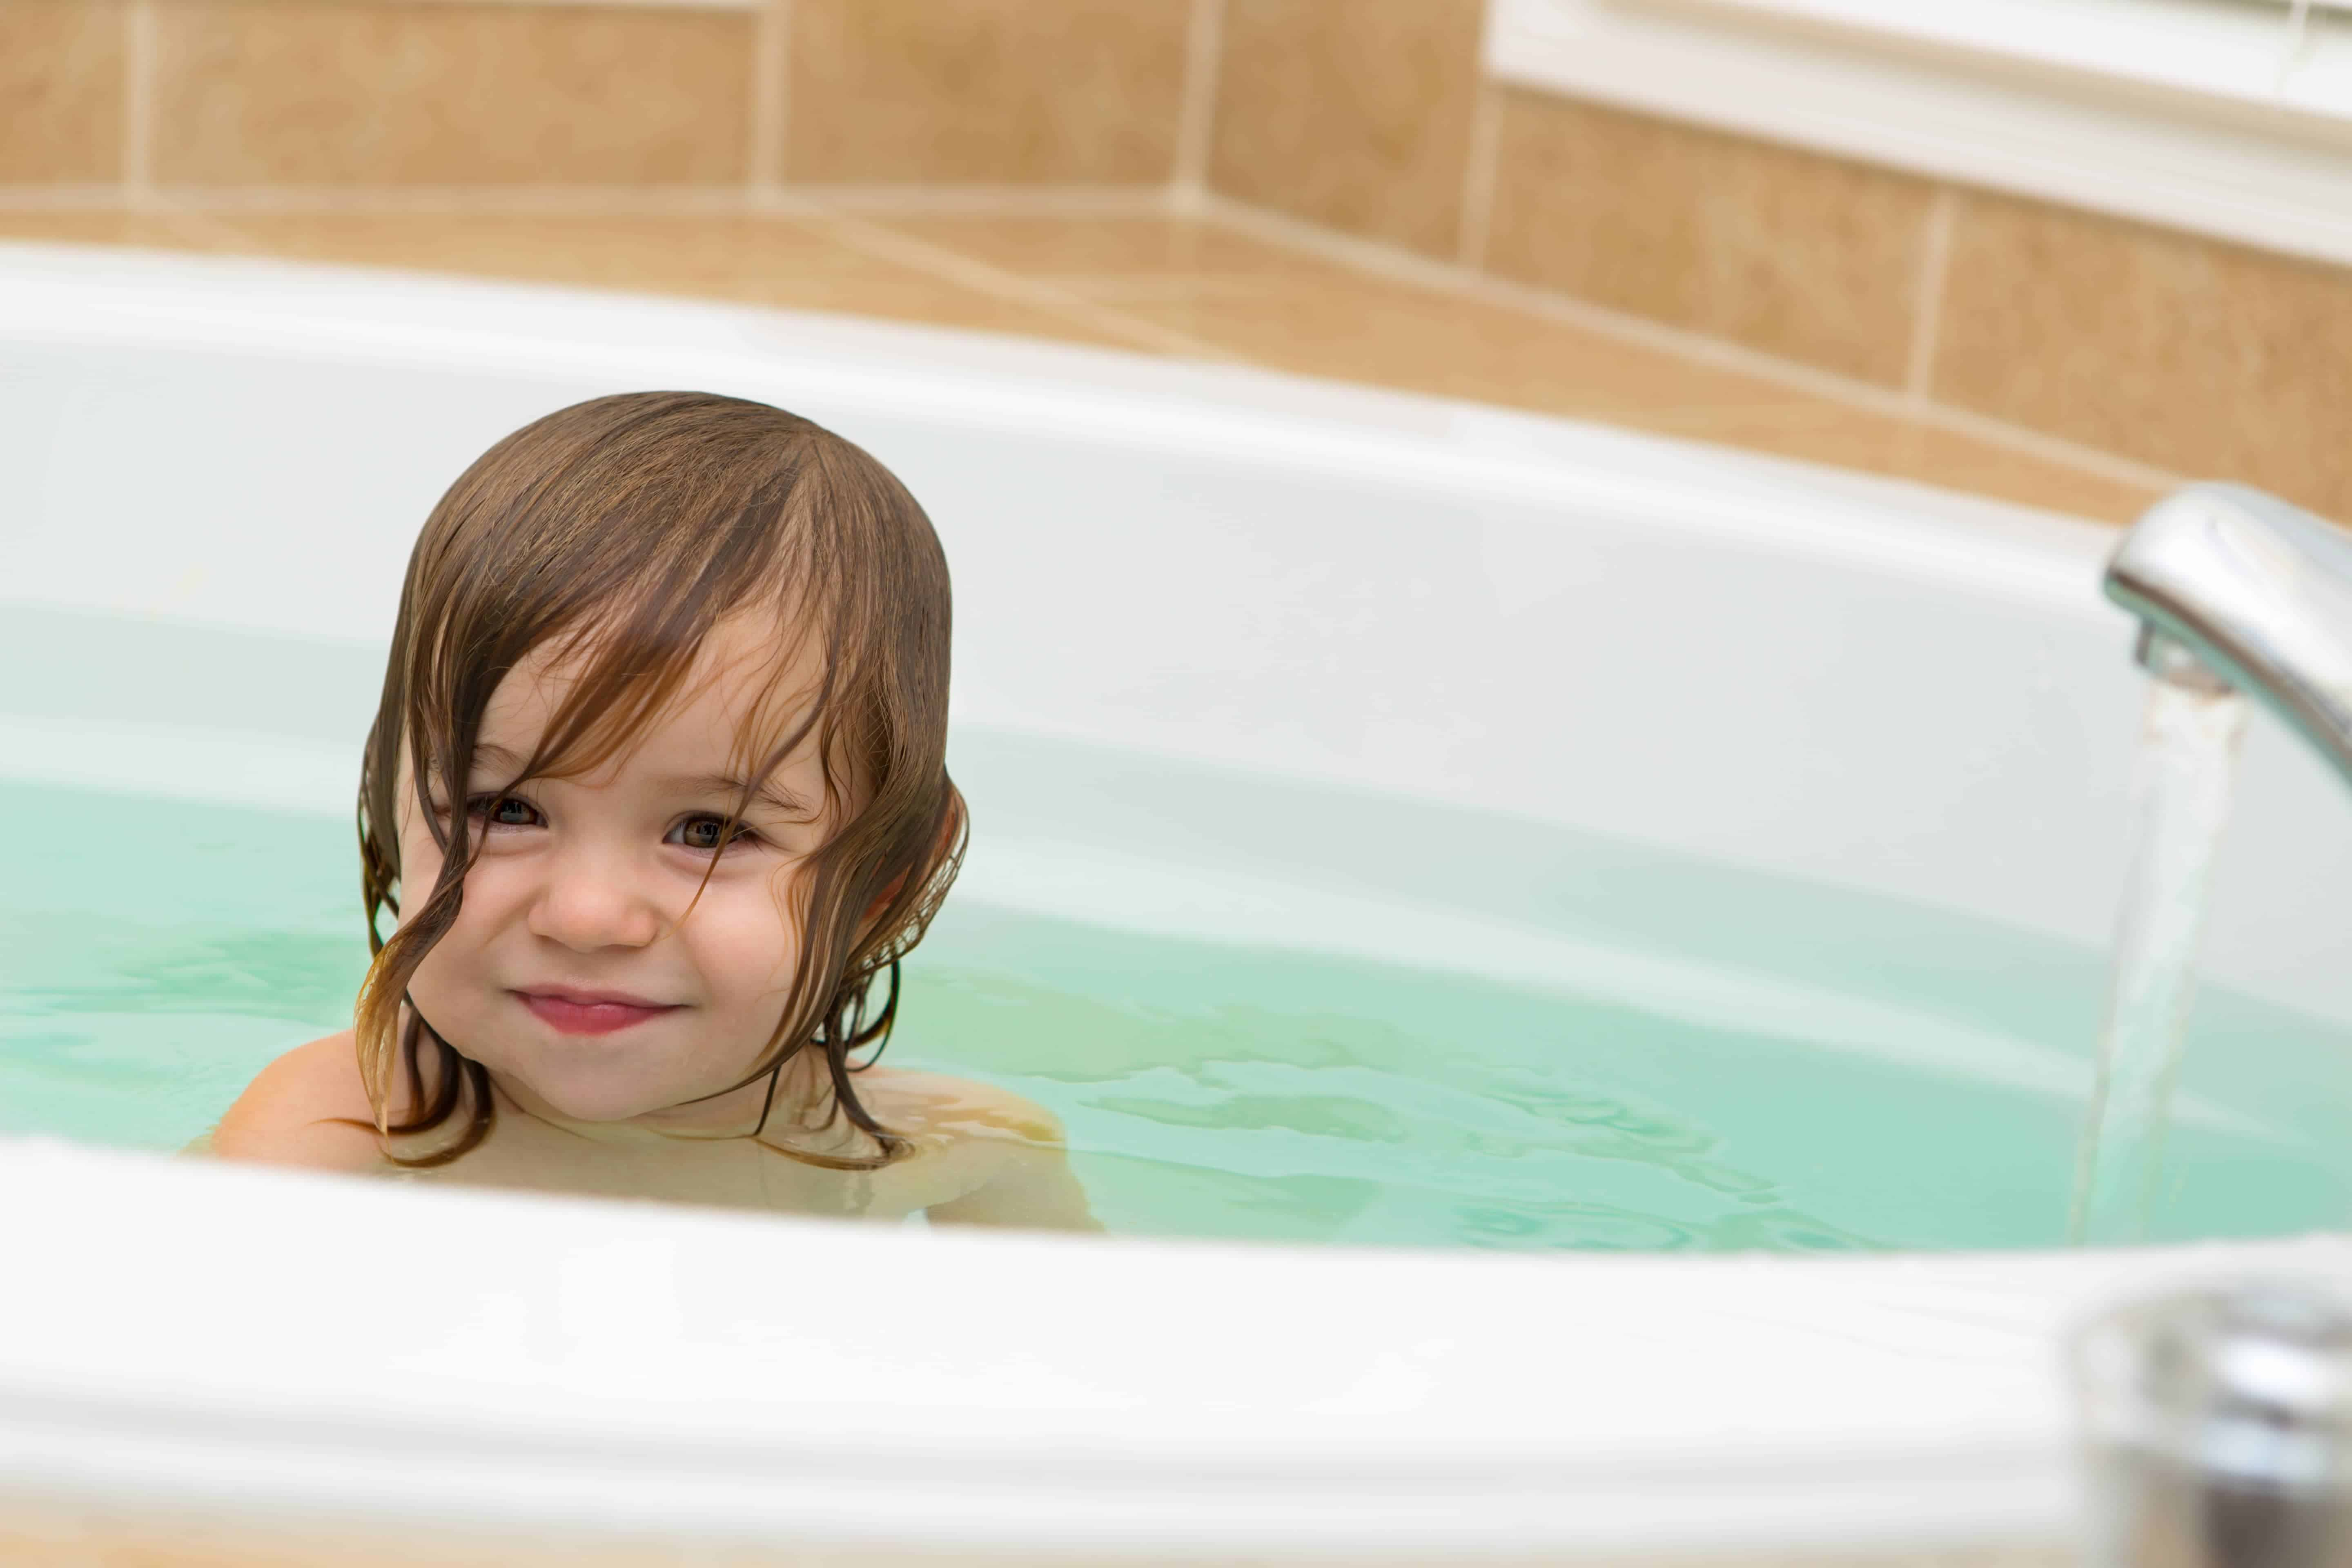 Detox Baths for Babies: How to Give Your Child a Detox Bath